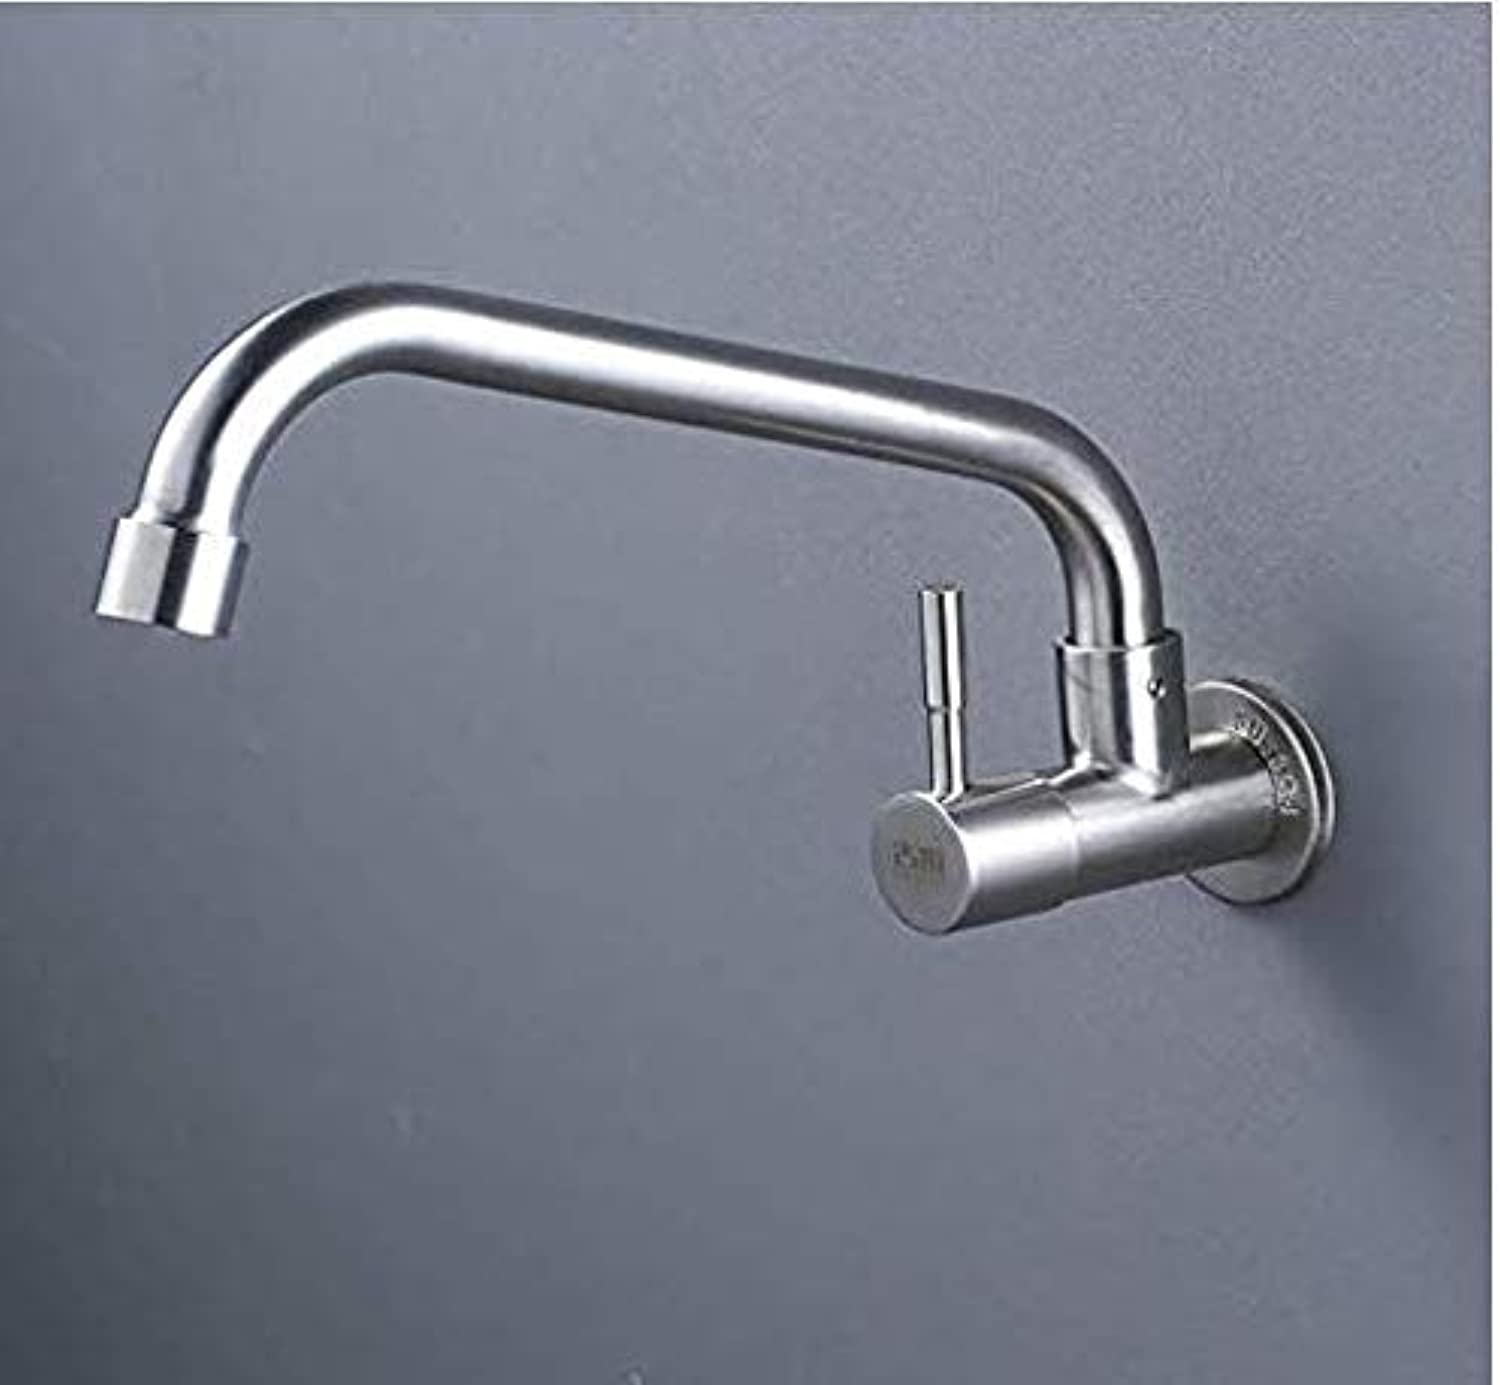 Kitchen Fauct Bathroom Faucet Kitchen Faucet in-Wall Sink Faucet Single Cold redating Basin Sink Faucet Copper Valve Core